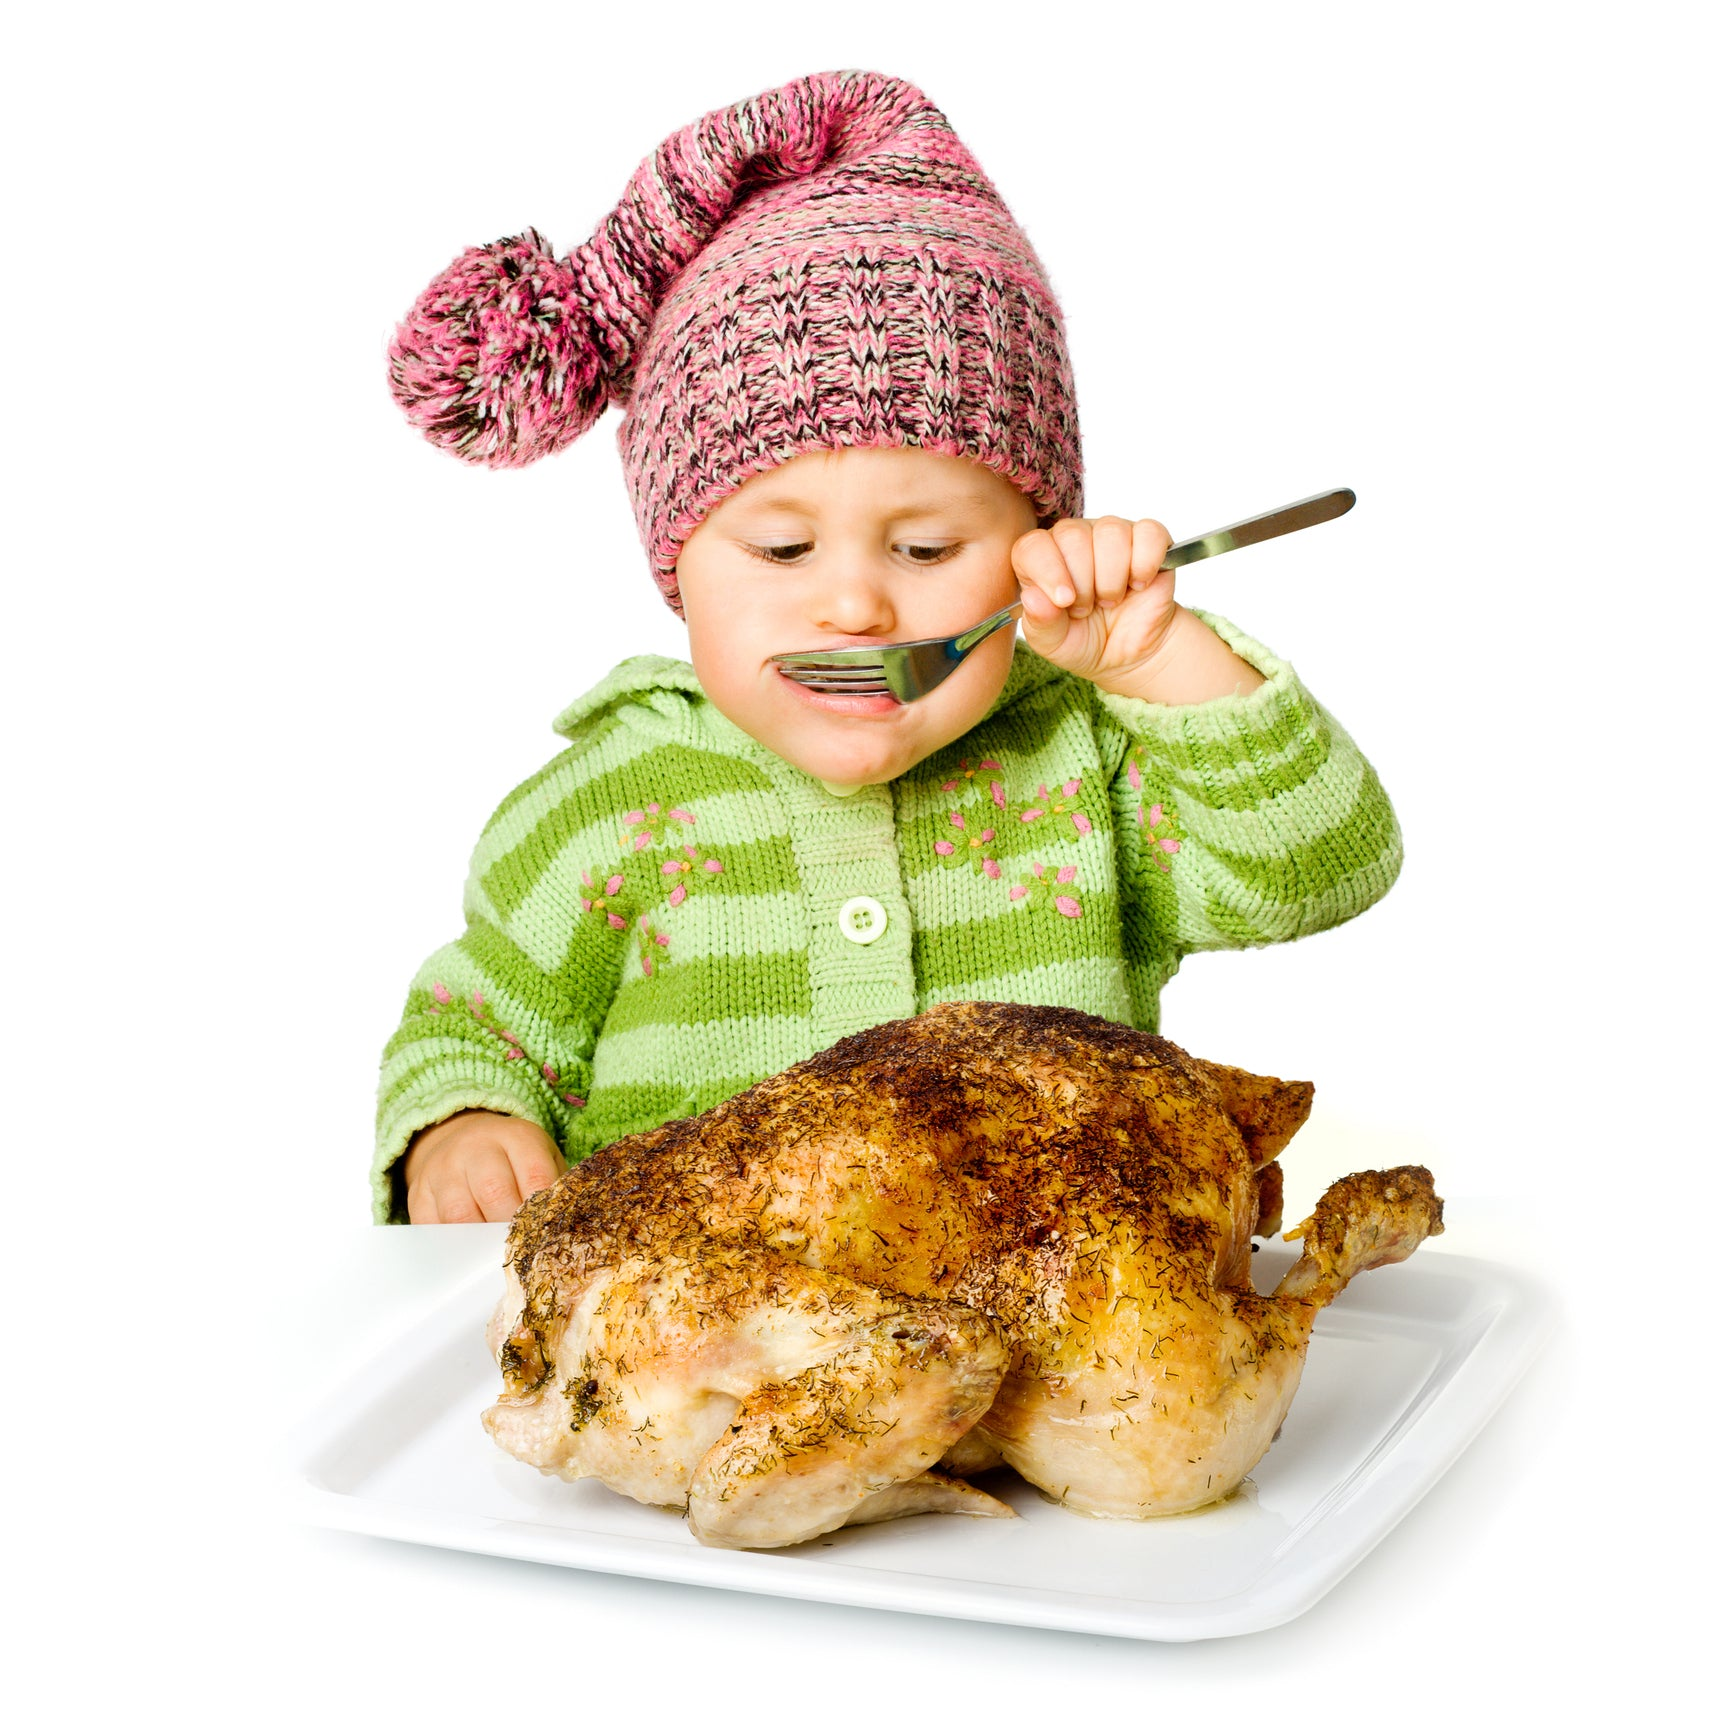 Feeding Your Little Turkey: Solids for Your Baby on Thanksgiving